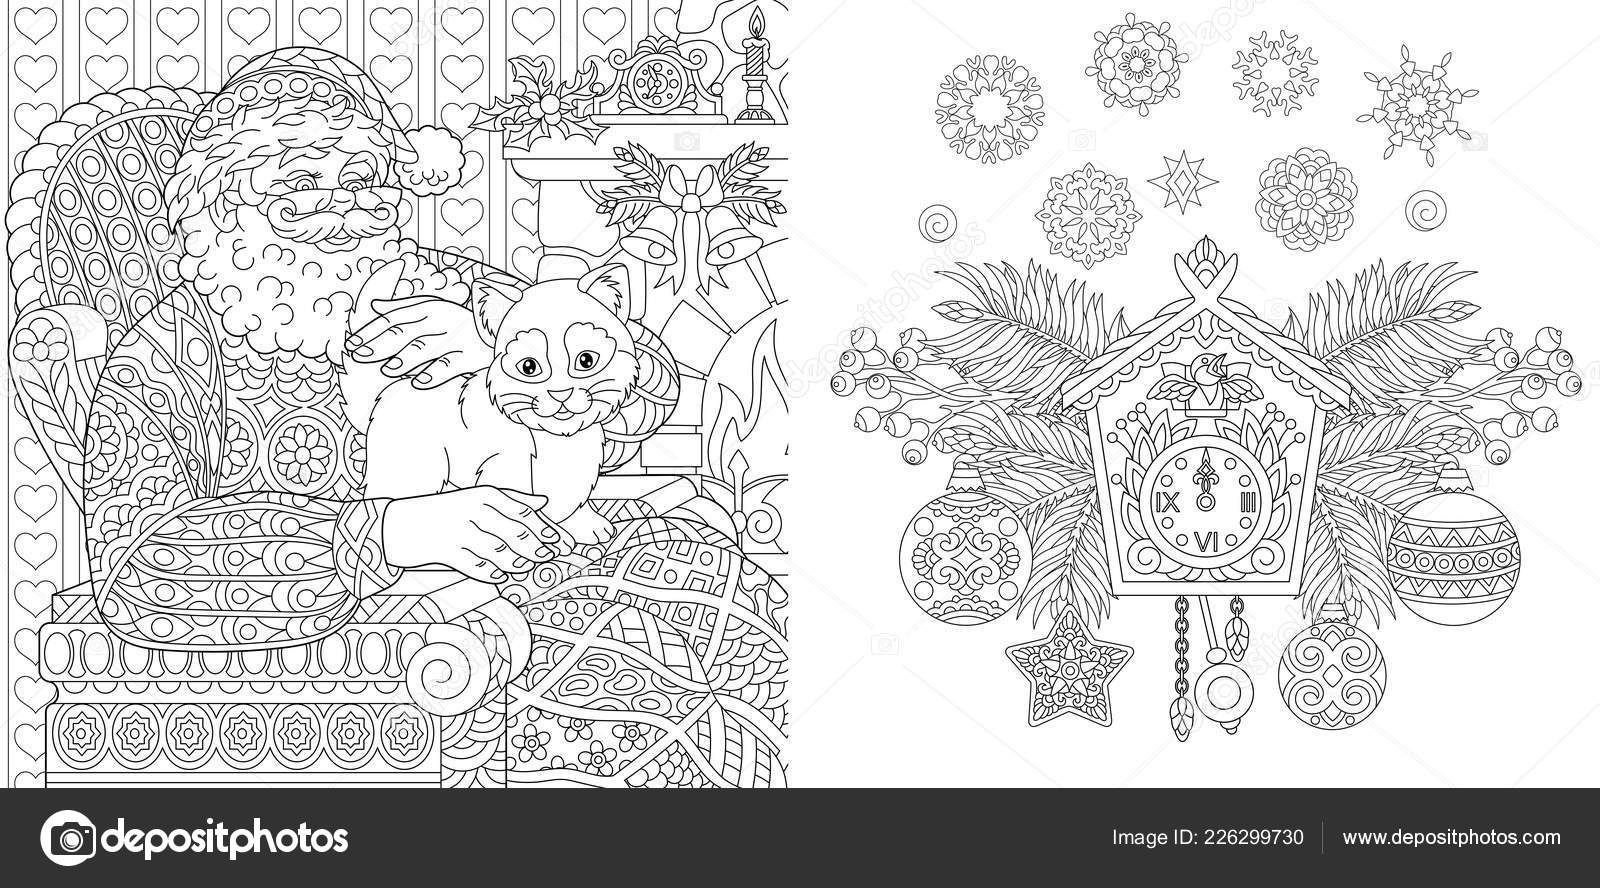 Christmas Colouring Pages Santa Christmas Coloring Book Christmas Colouring Pages Santa Claus Cat Vintage Stock Vector C Sybirko 226299730